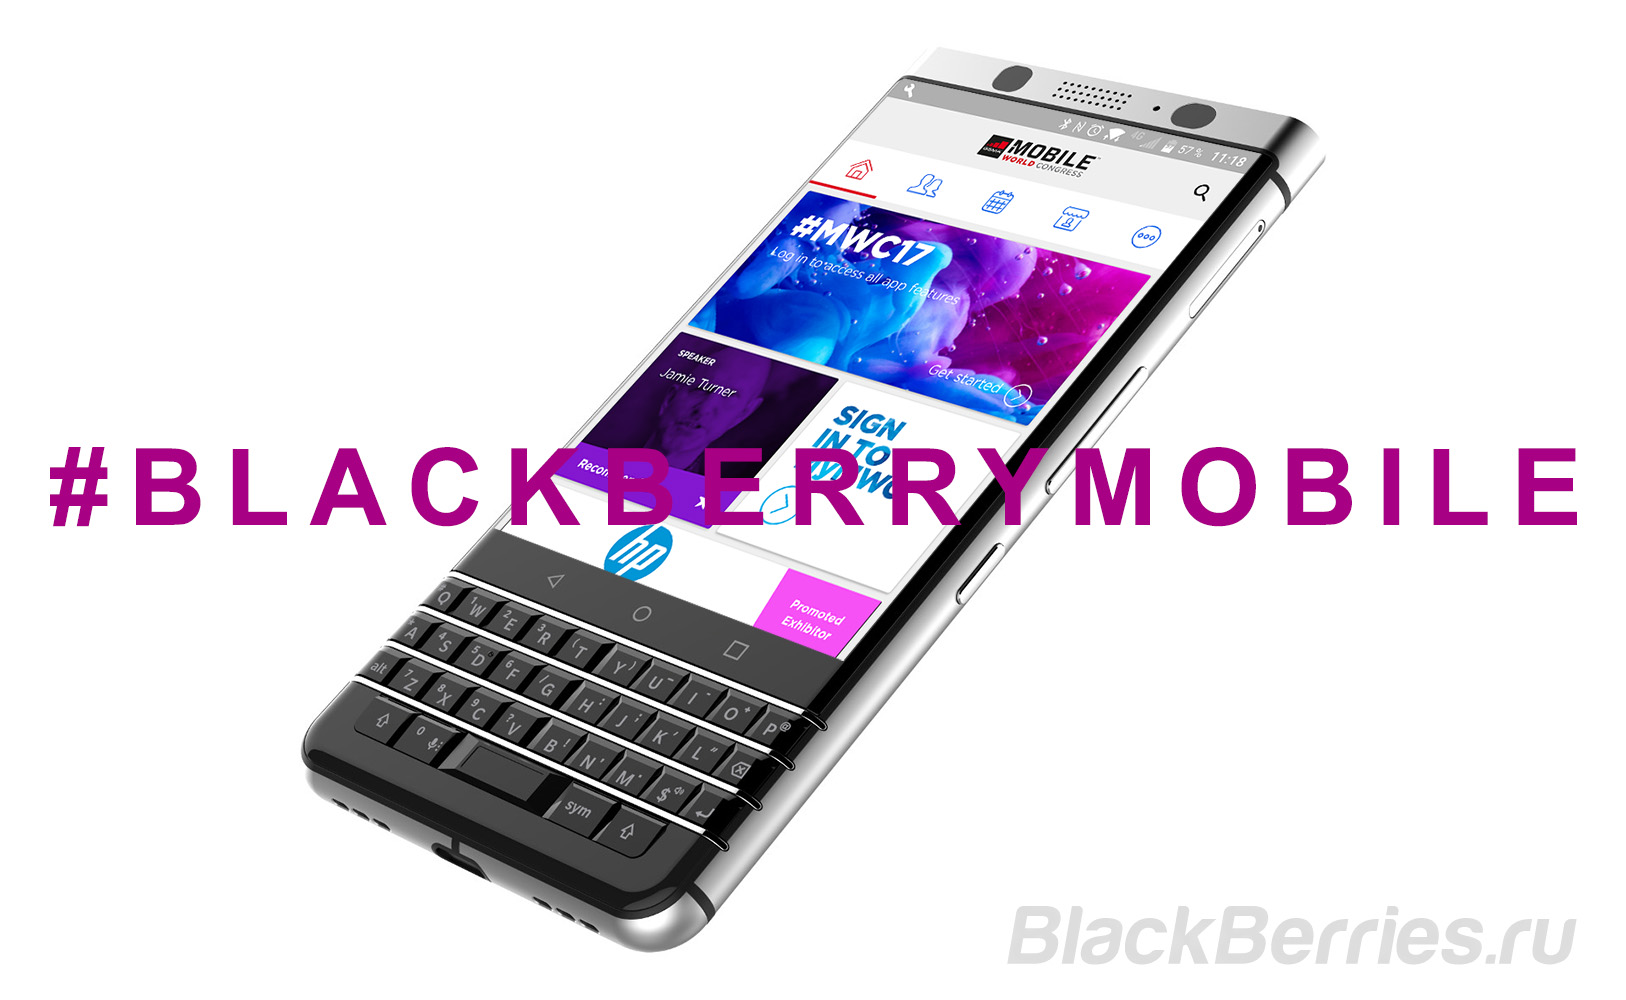 BlackBerryMobile